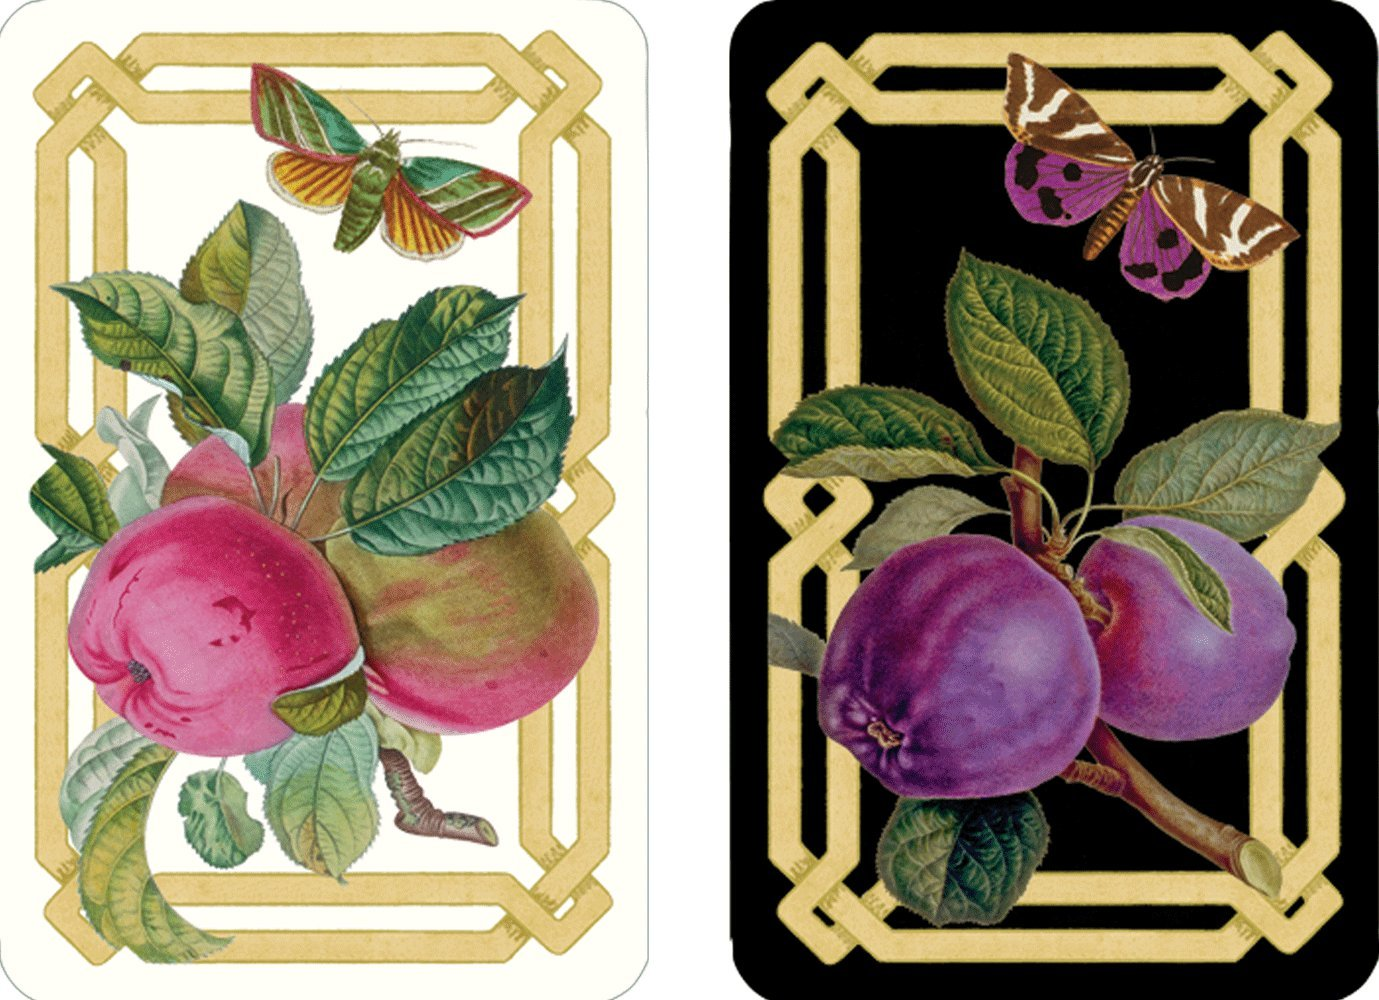 Decoupage Garden Caspari Large Jumbo Print Double Deck of Bridge Playing Cards For Impaired Vision